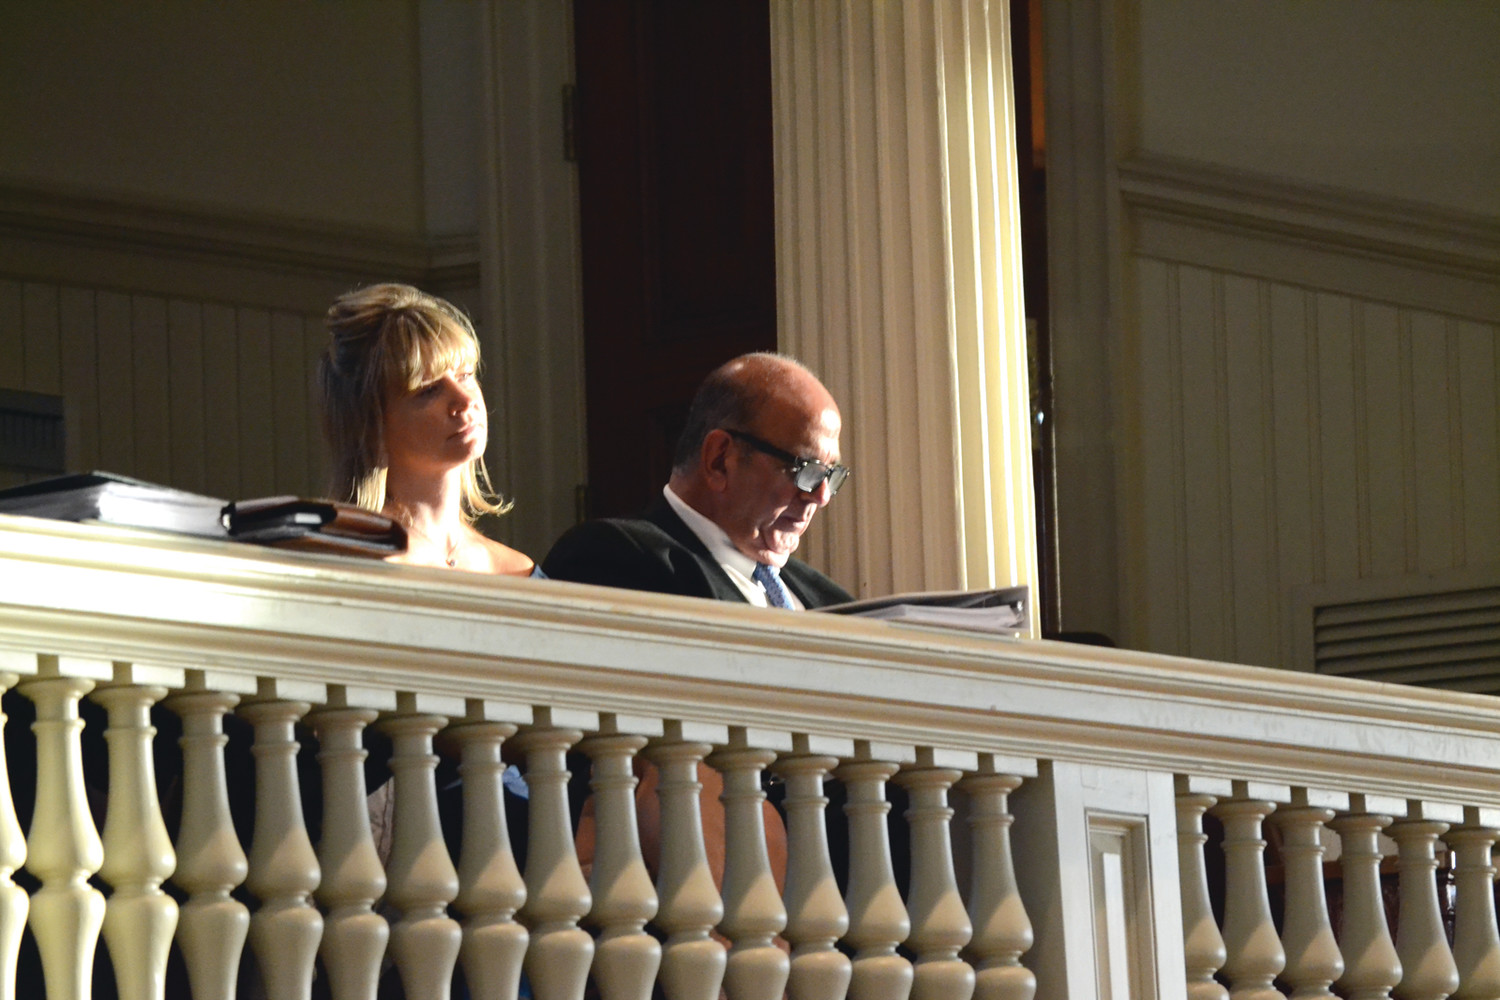 WATCHFUL EYE: Acting mayor Joseph Solomon made good on his promise to attend council meetings, observing from the upper balcony on Monday evening.